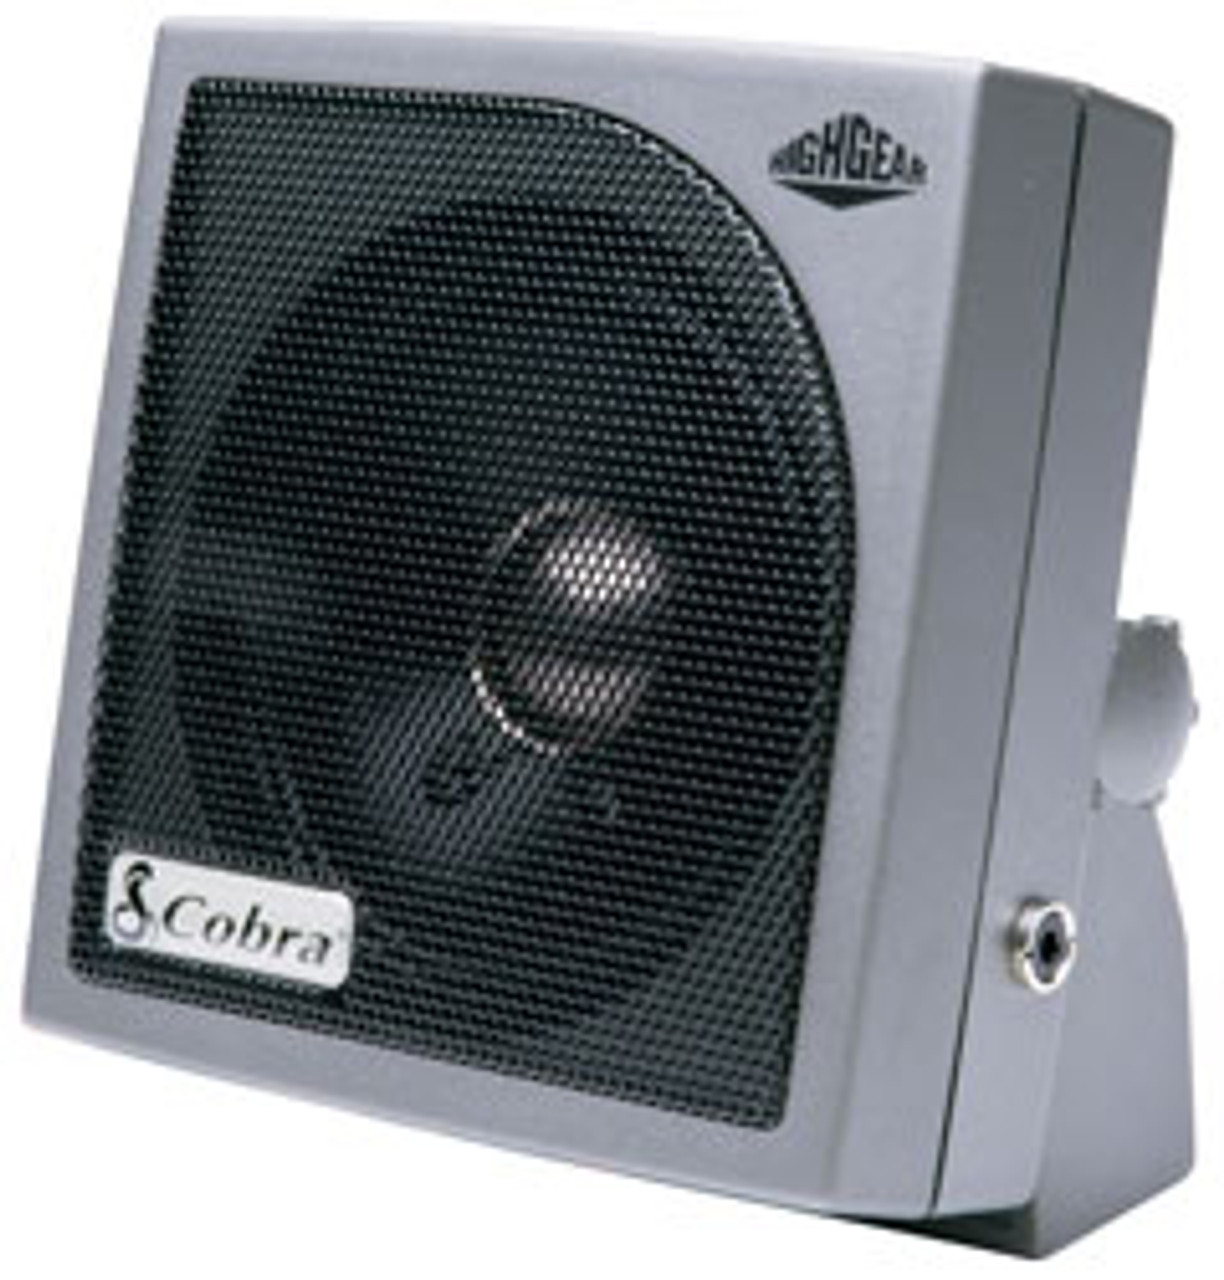 Cobra - HGS-500 Noise Canceling Extension Speaker w/Talkback